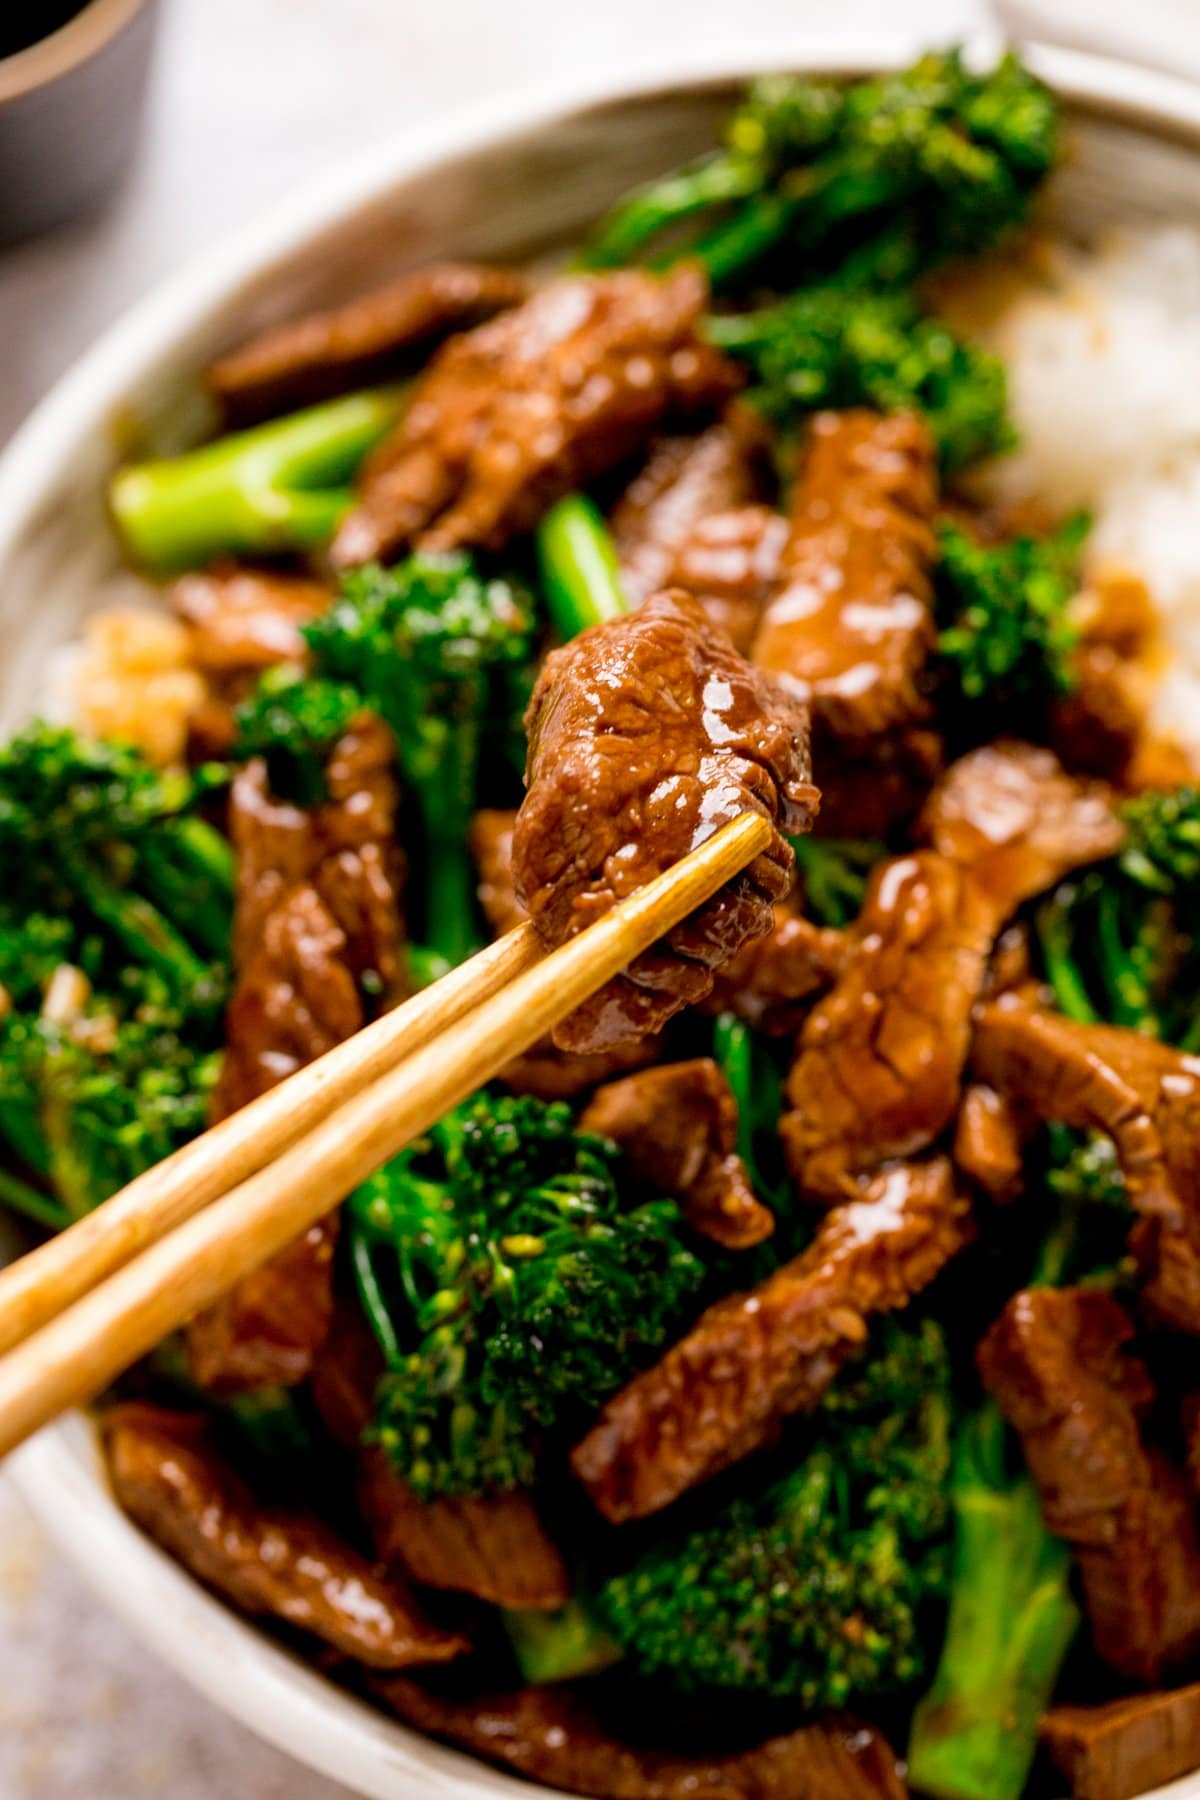 Chopsticks taking a piece of Chinese beef from a bowl of beef and broccoli.